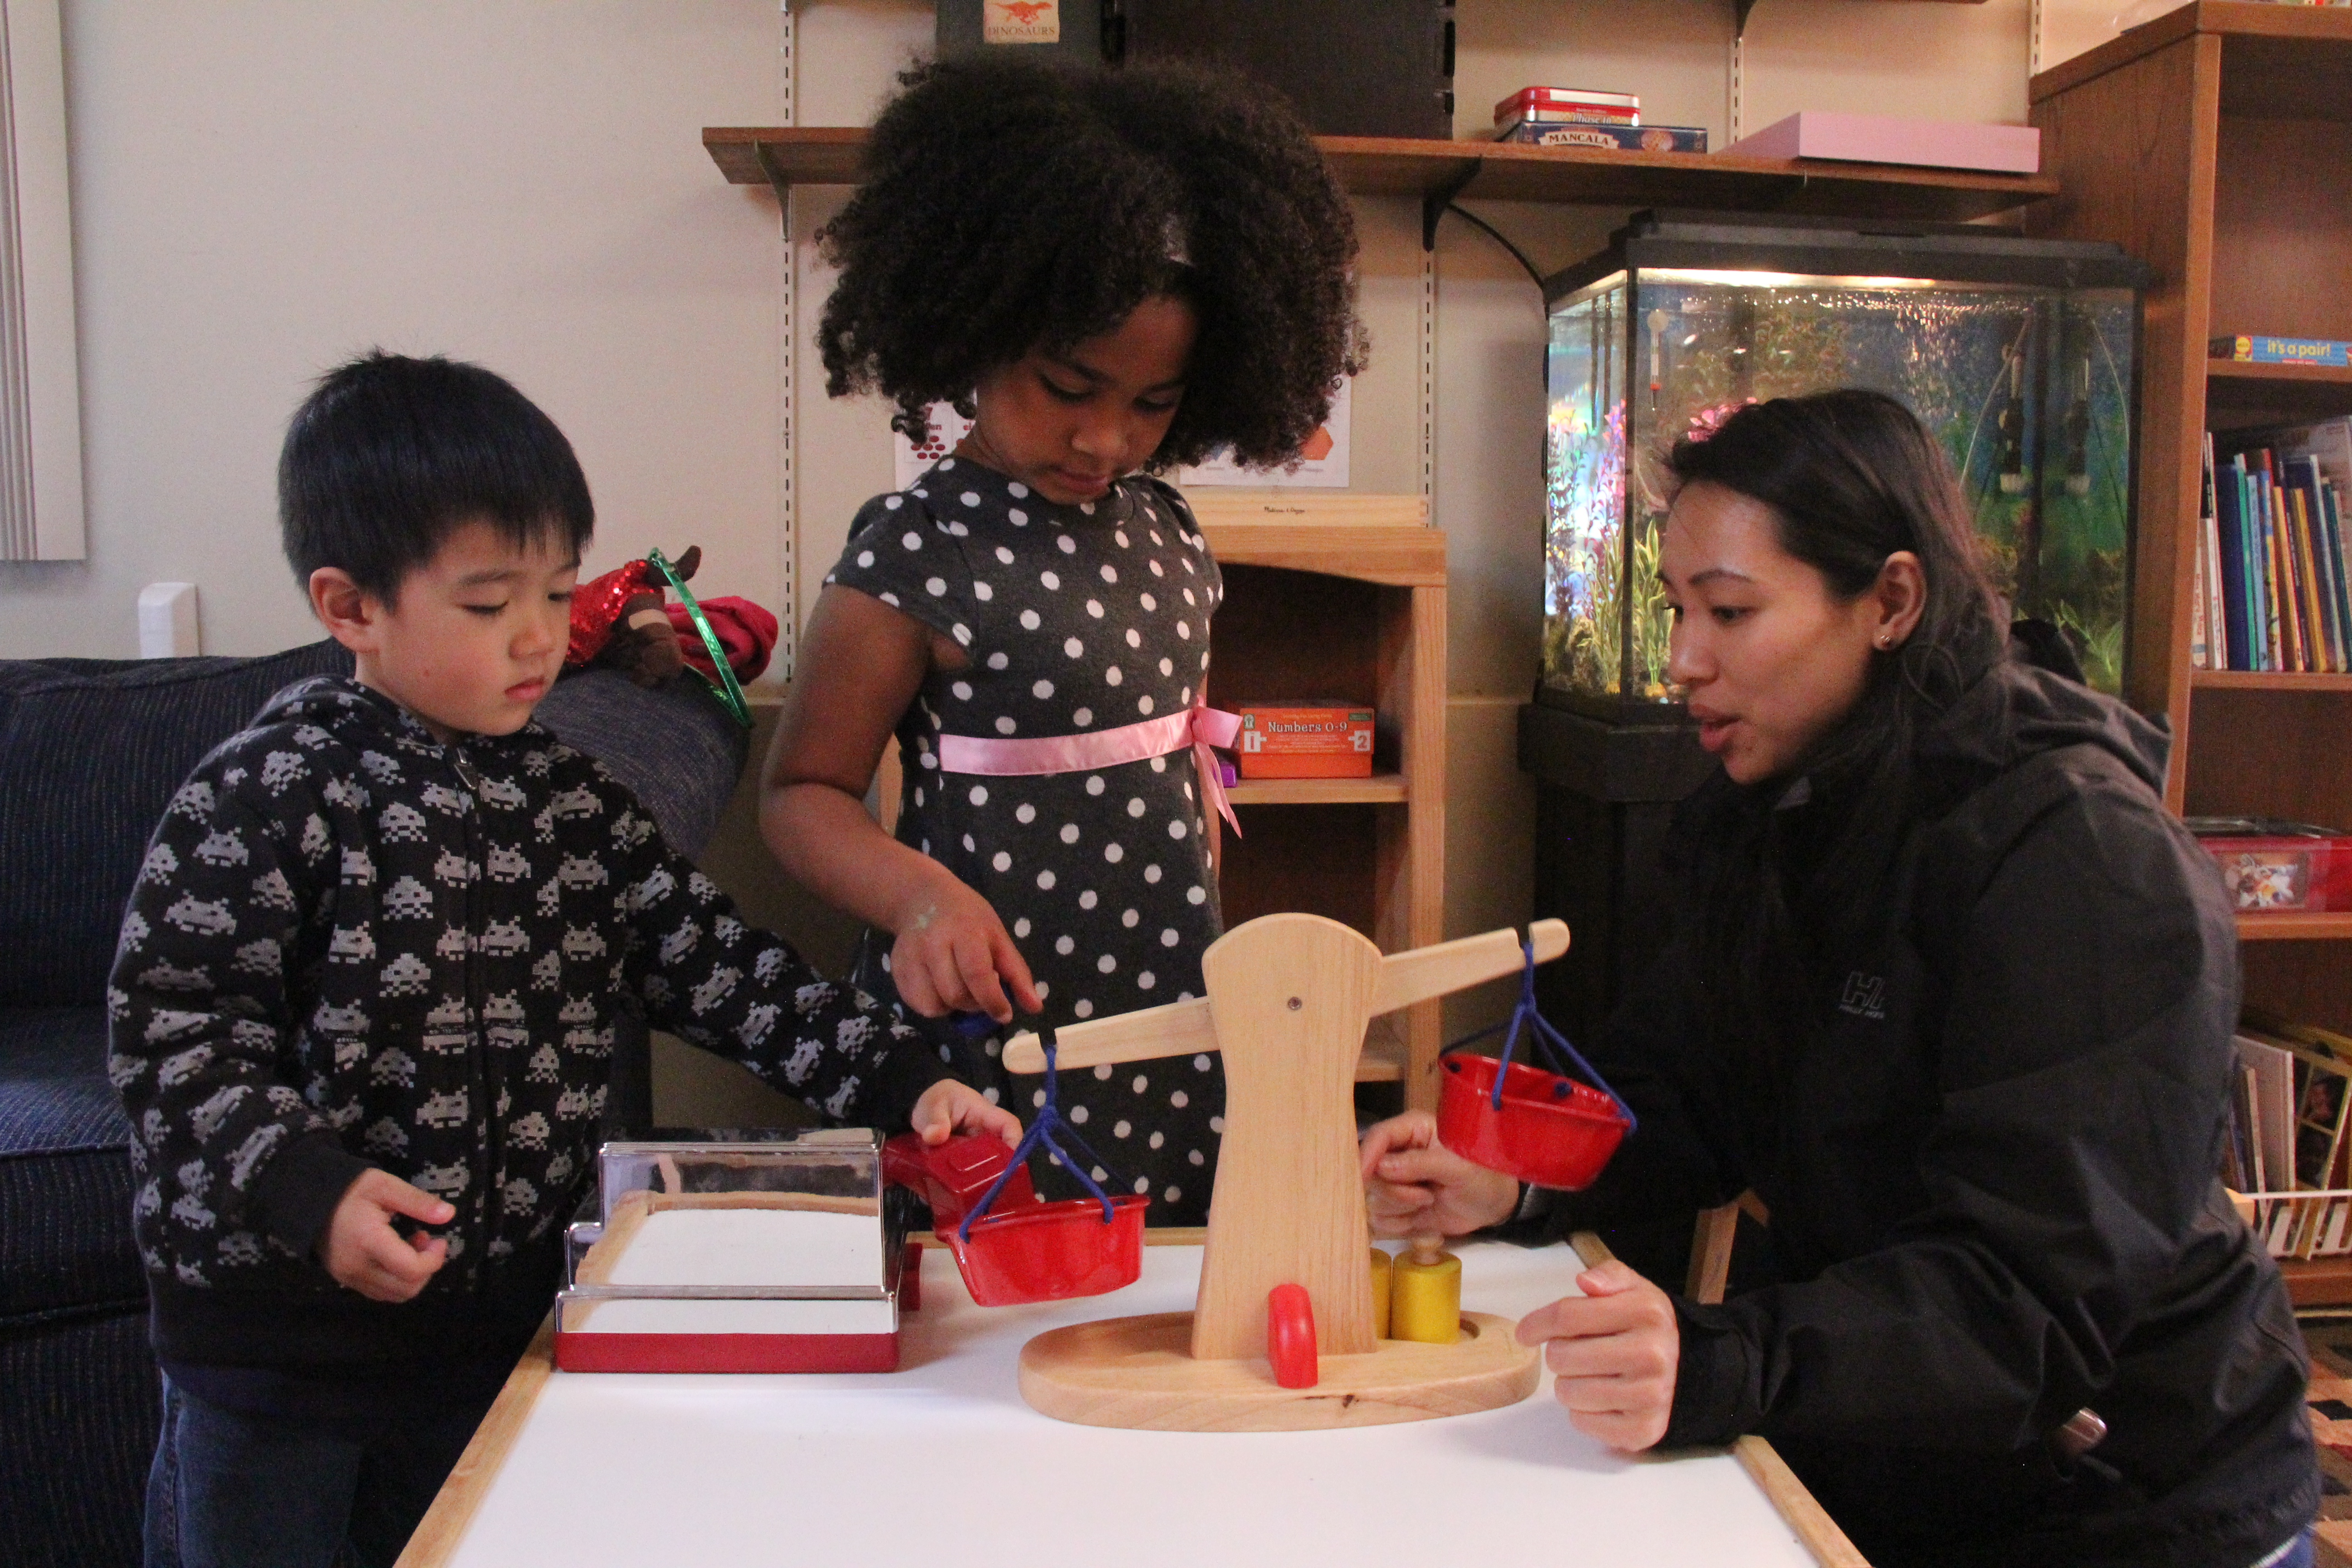 Work broadening high-quality early learning bolstered by